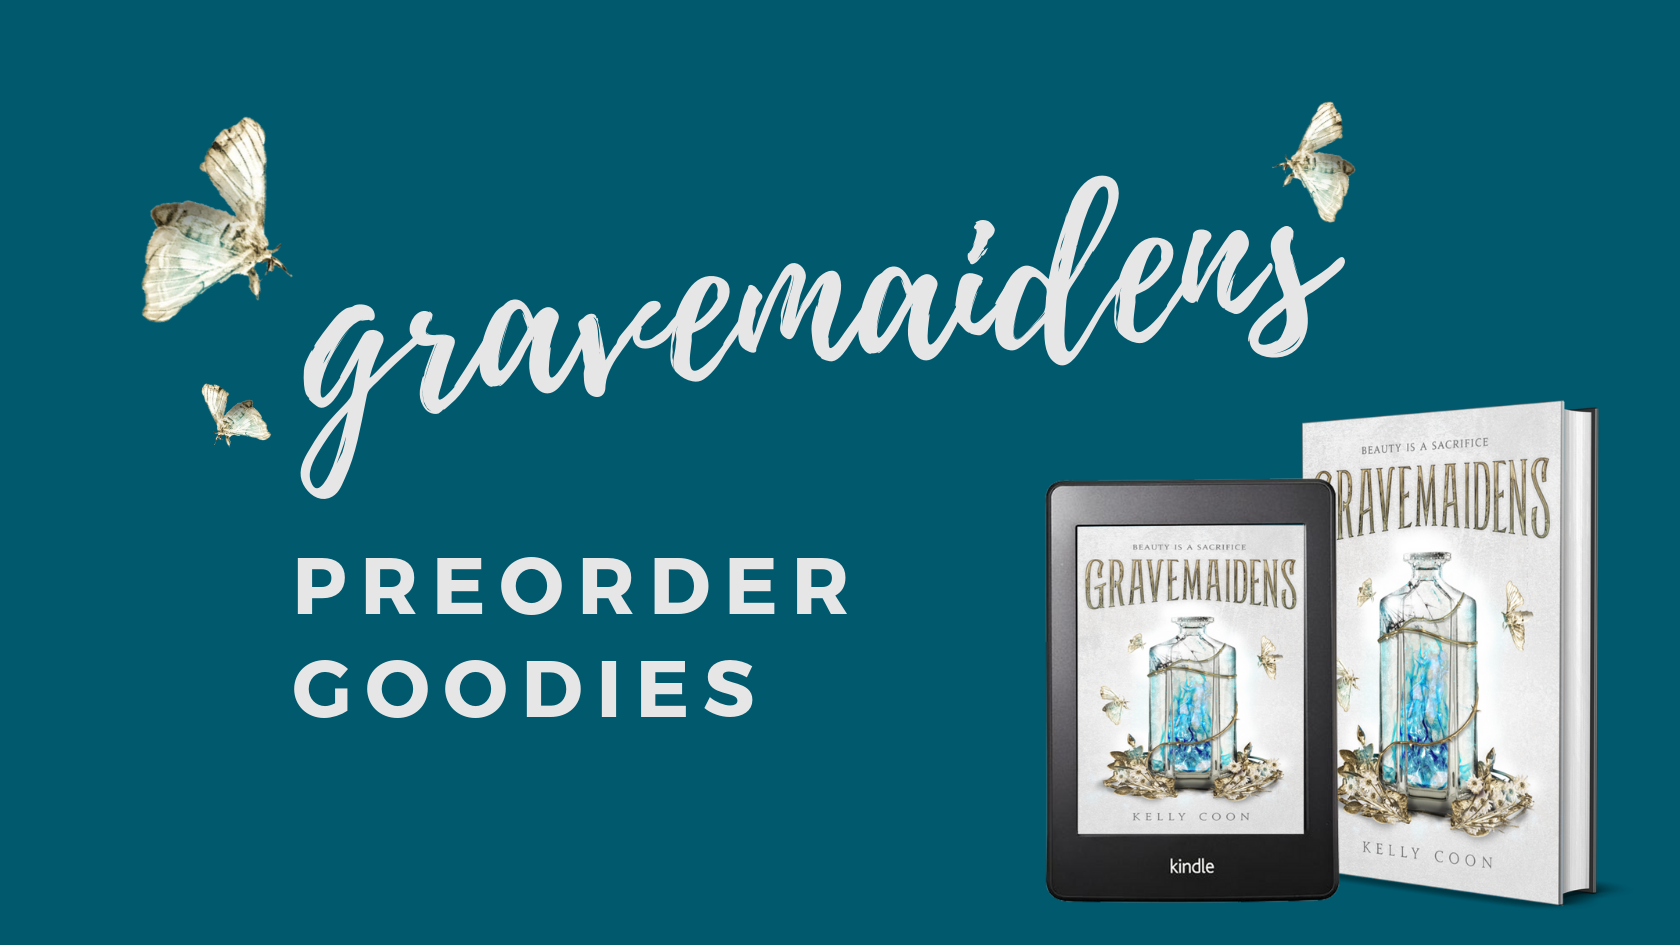 GRAVEMAIDENS Preorder Goodies (1).png